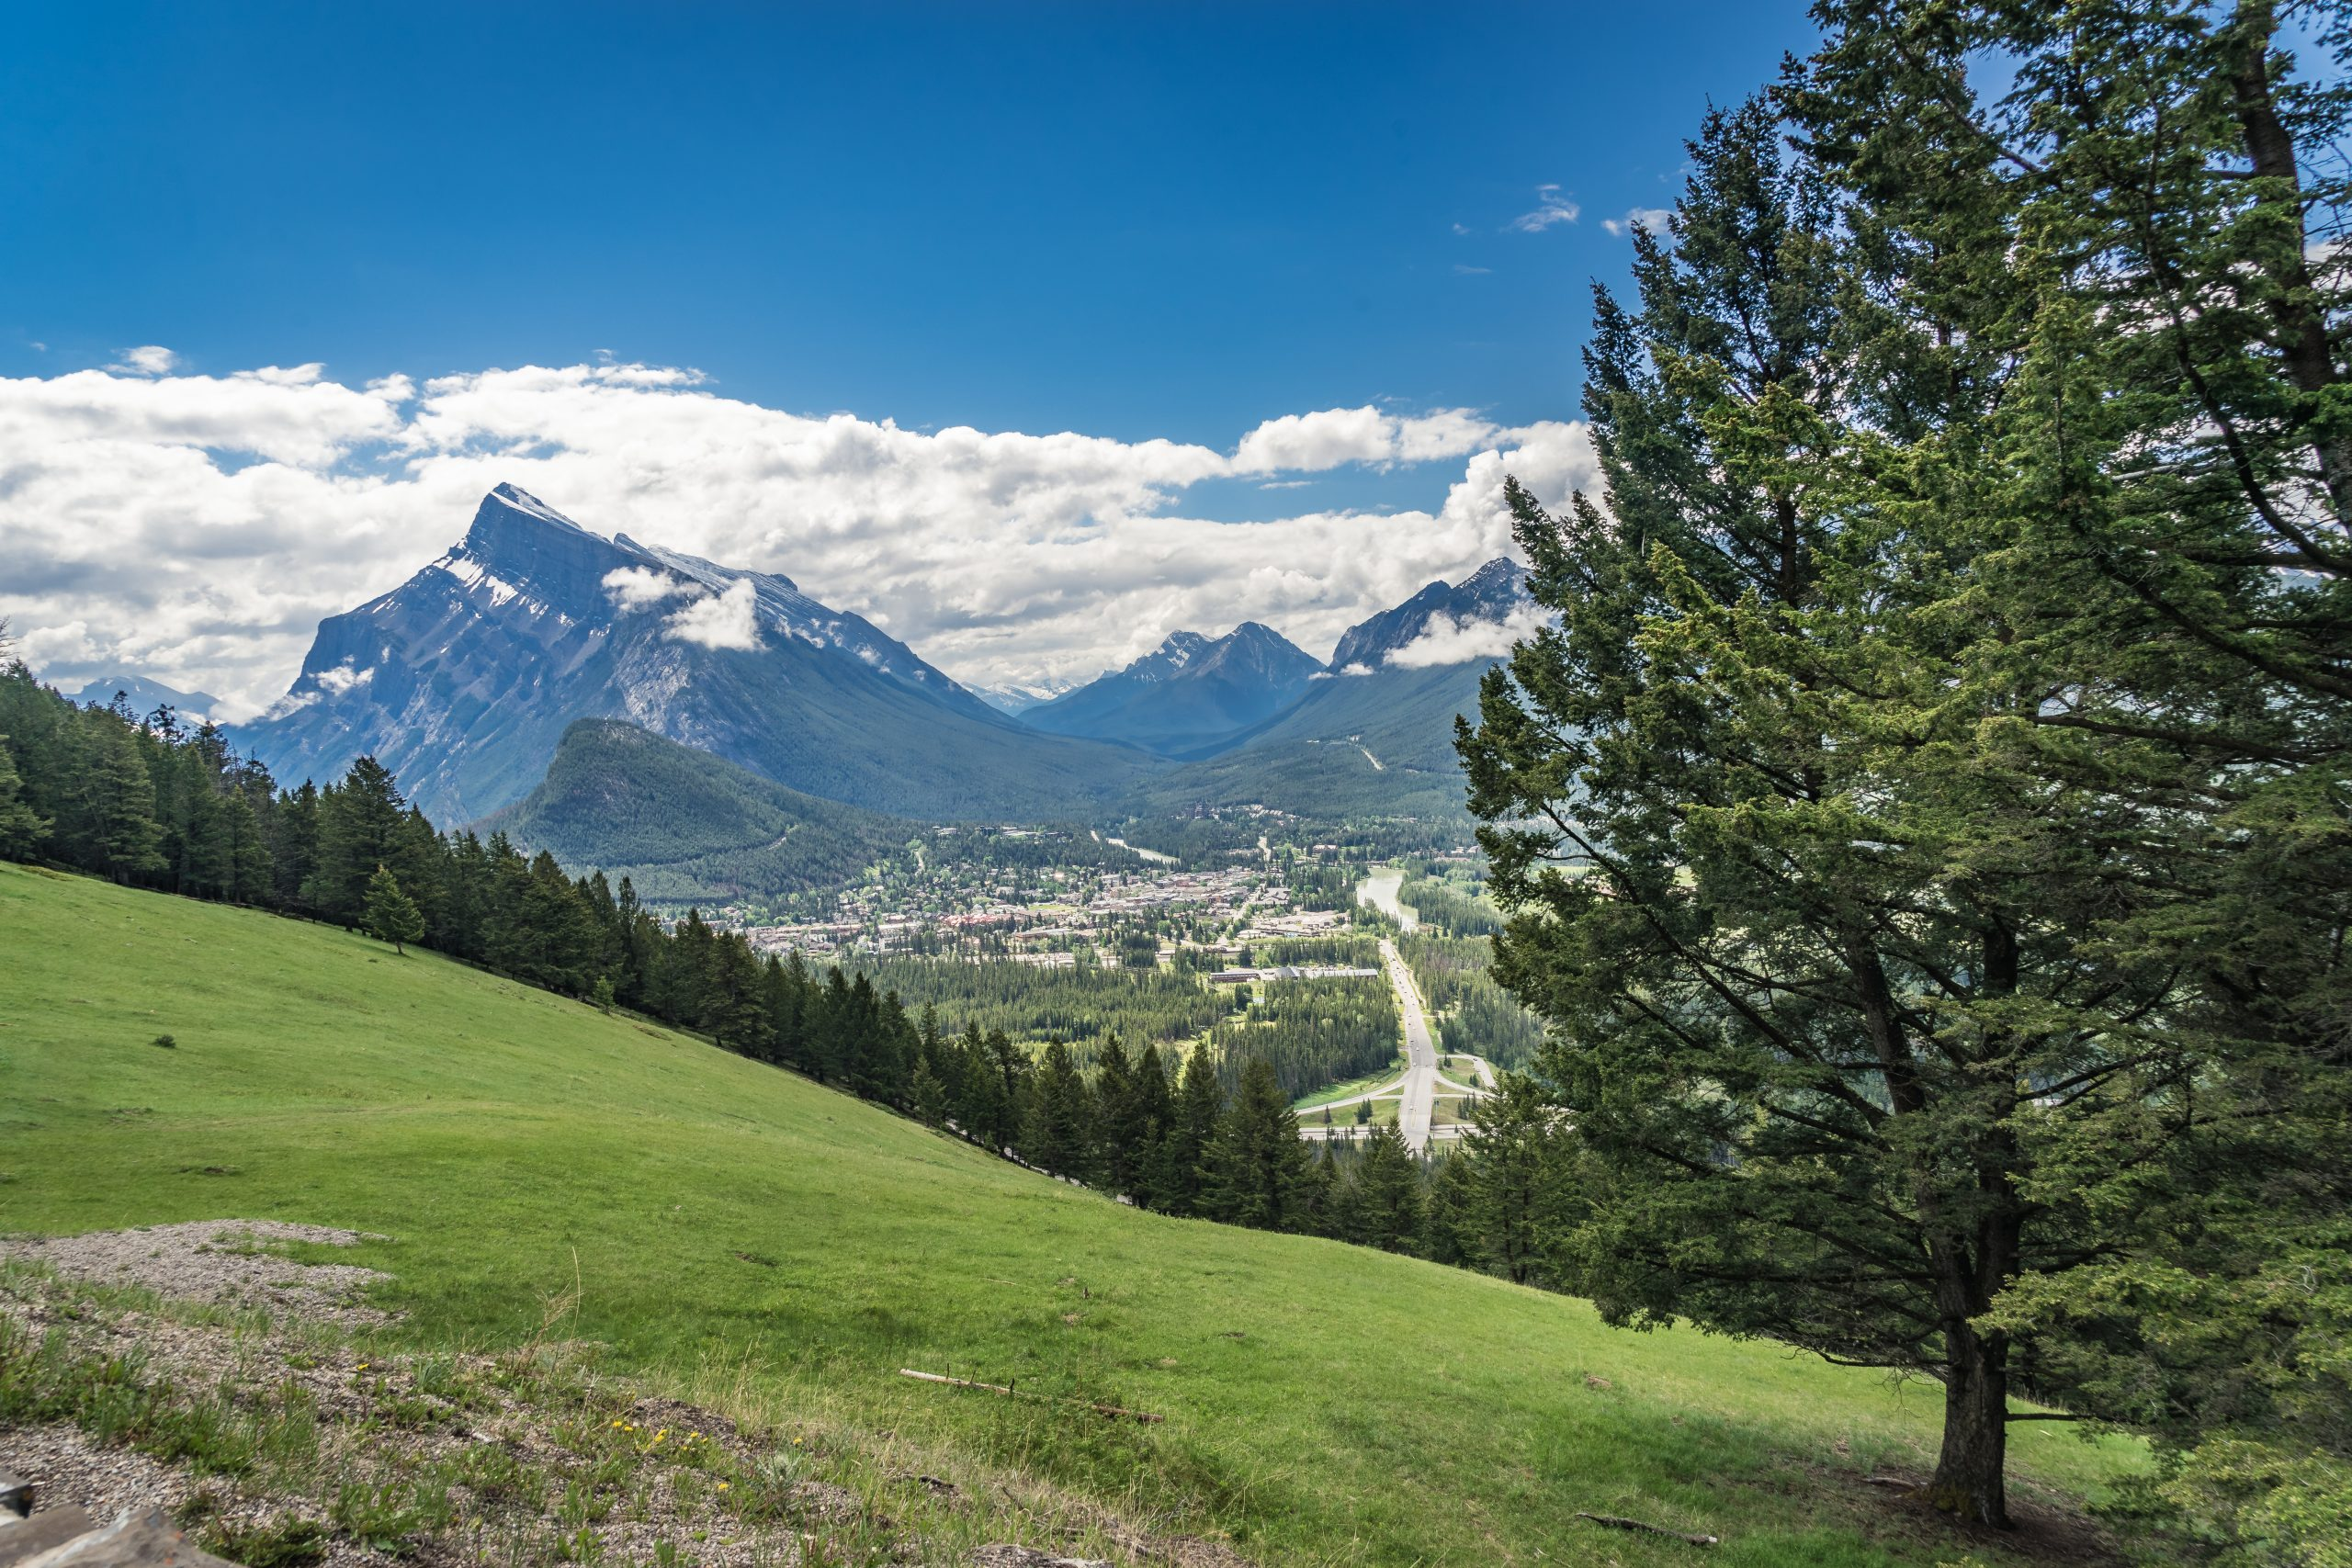 Town of Banff from Mount Norquay Lookout, Banff National Park, Alberta